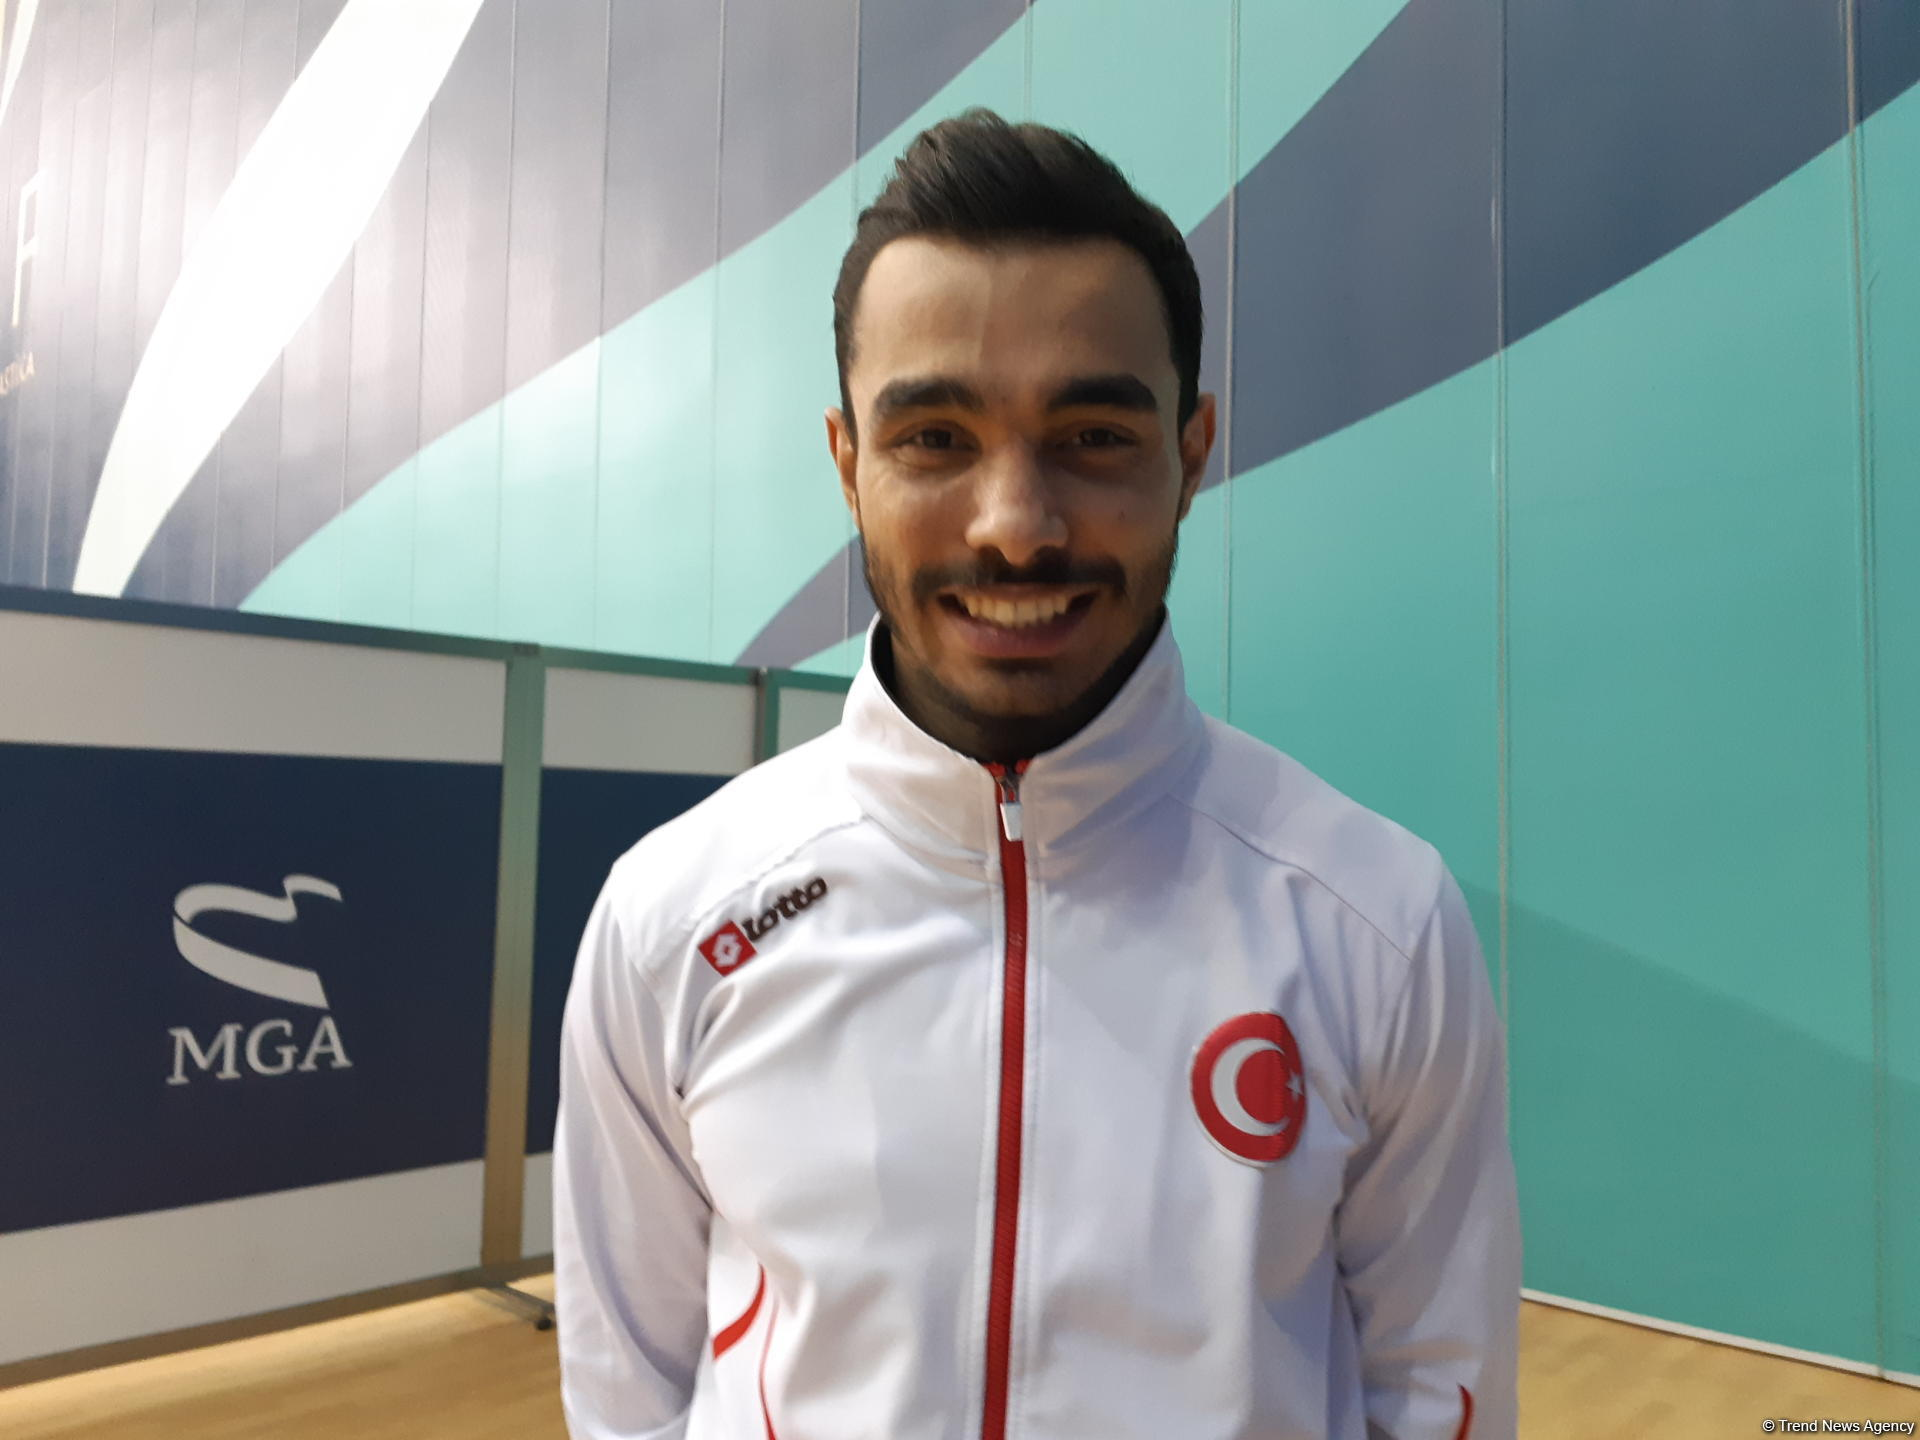 Gymnast Ferhat Arican: Azerbaijani fans strongly support us